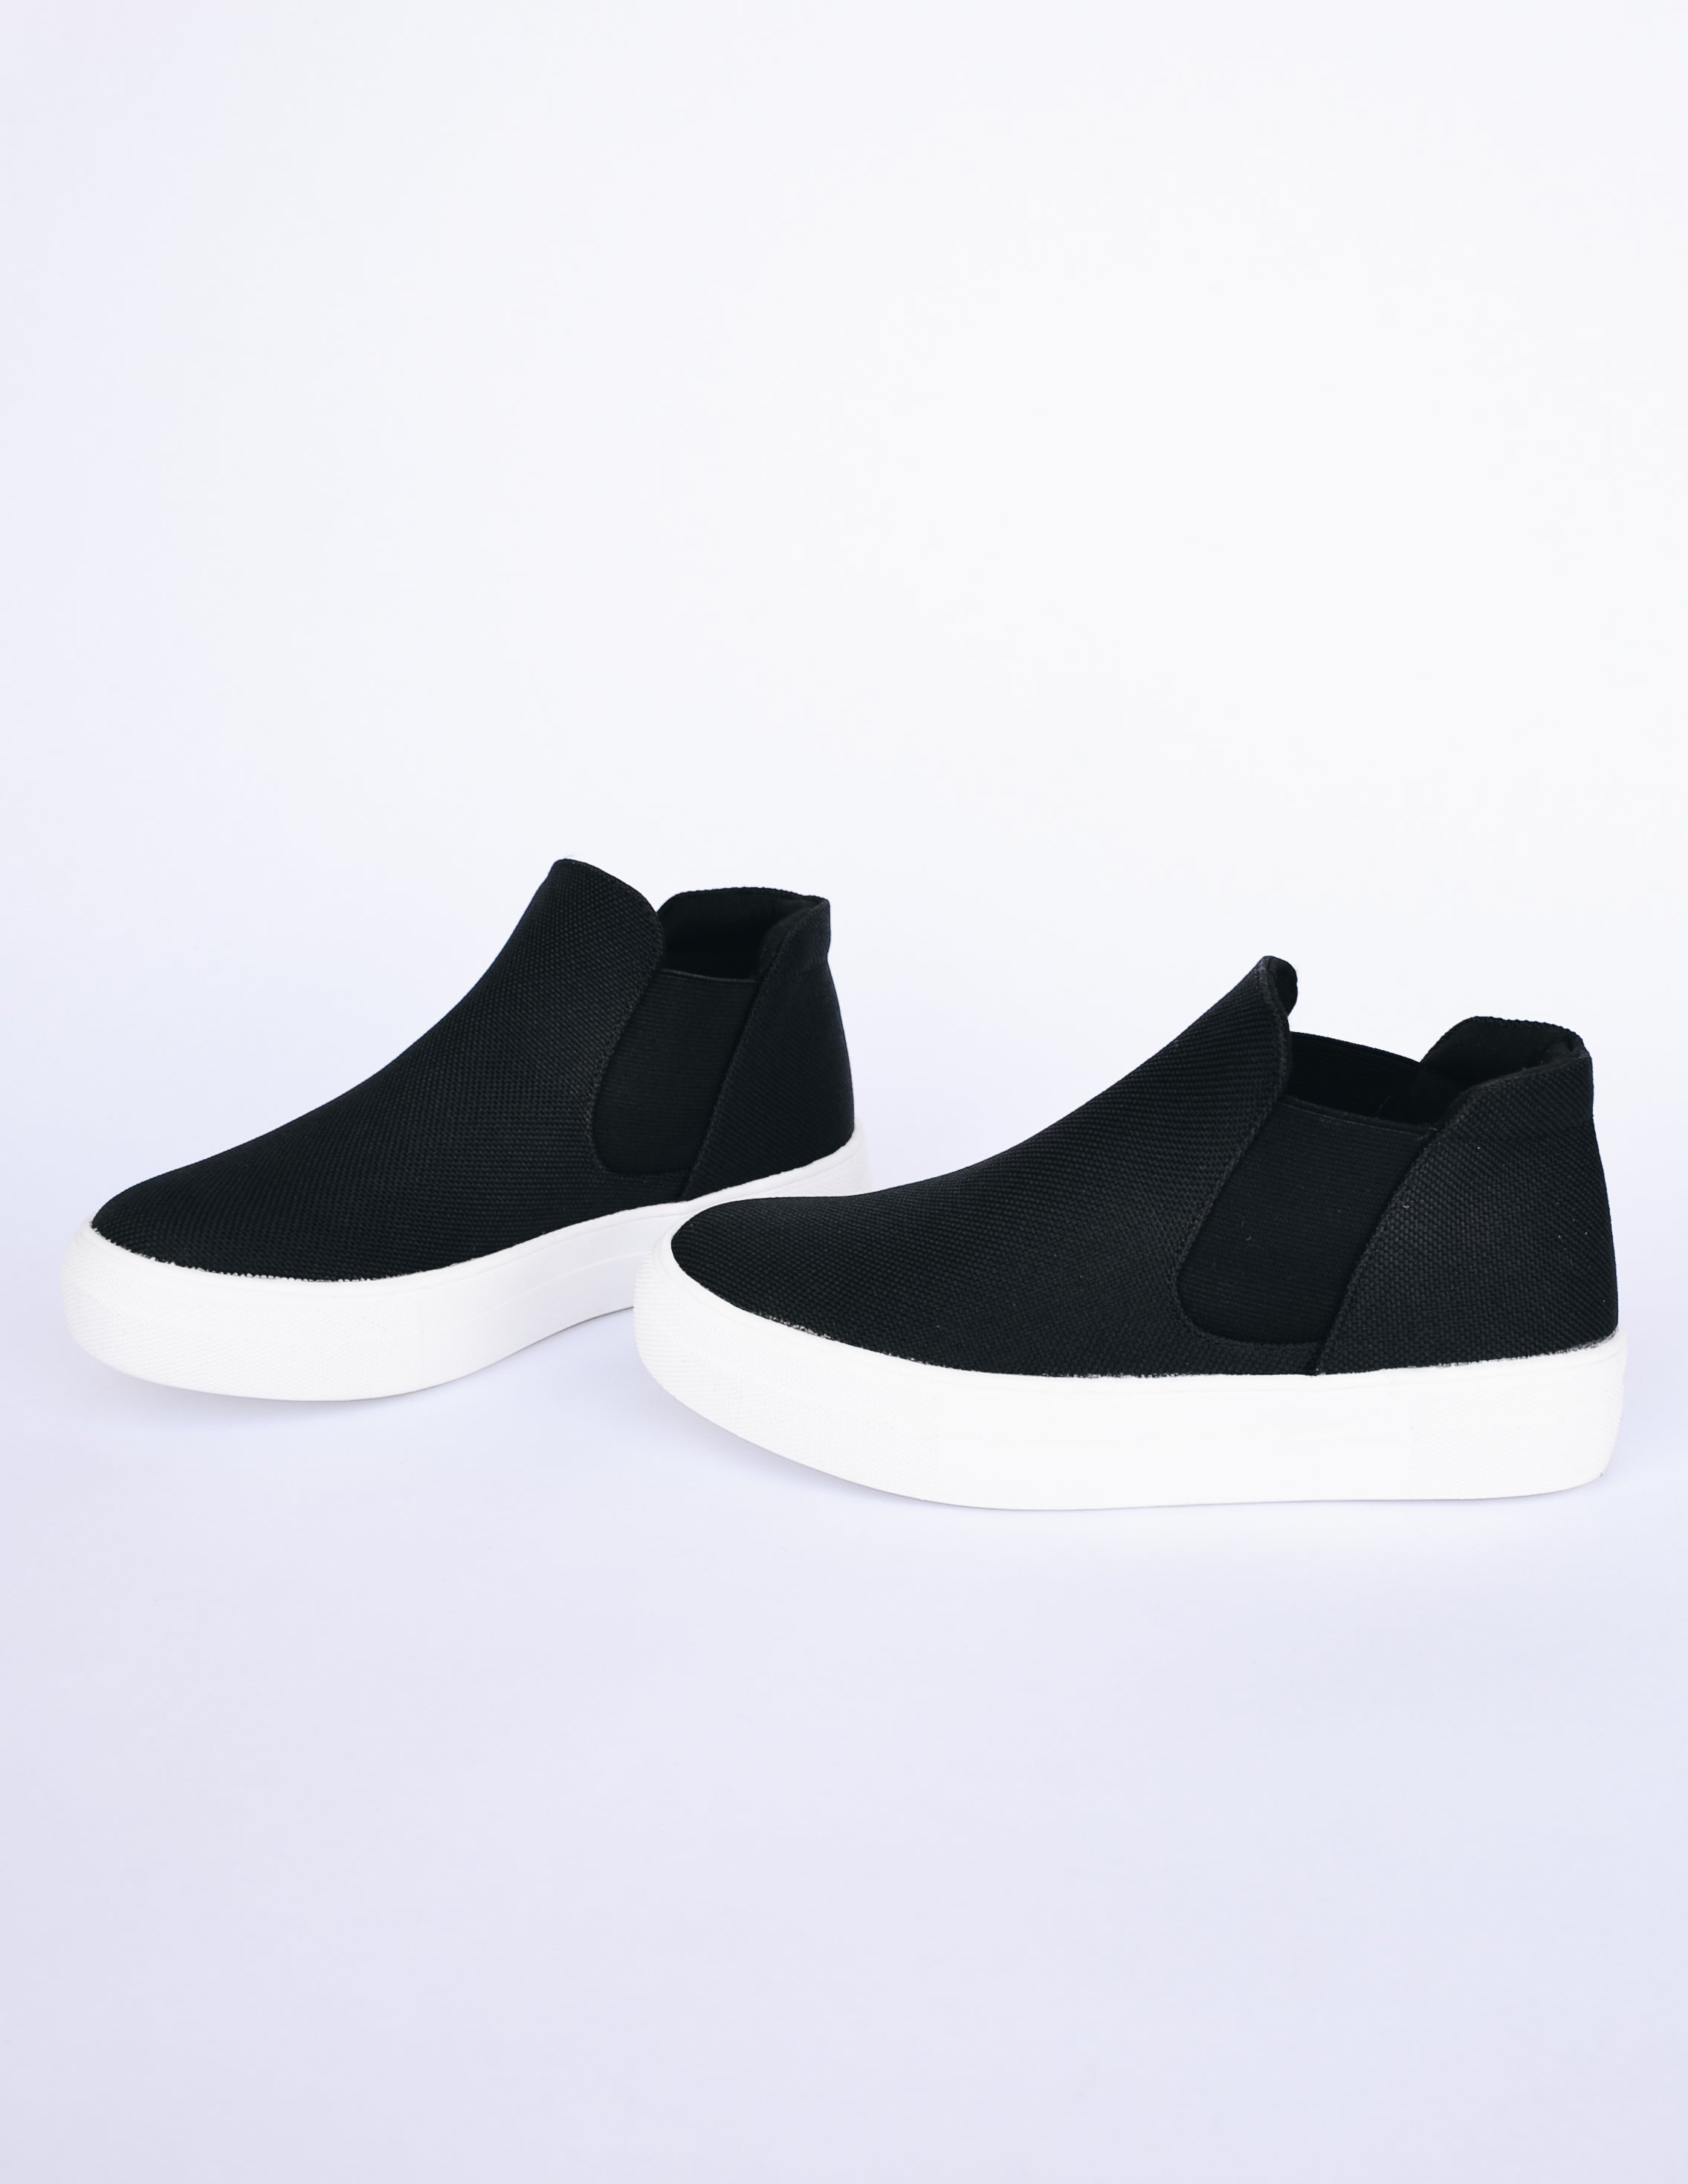 NOW OR NEVER SNEAKER - Black - Elle Bleu Shoe Boutique